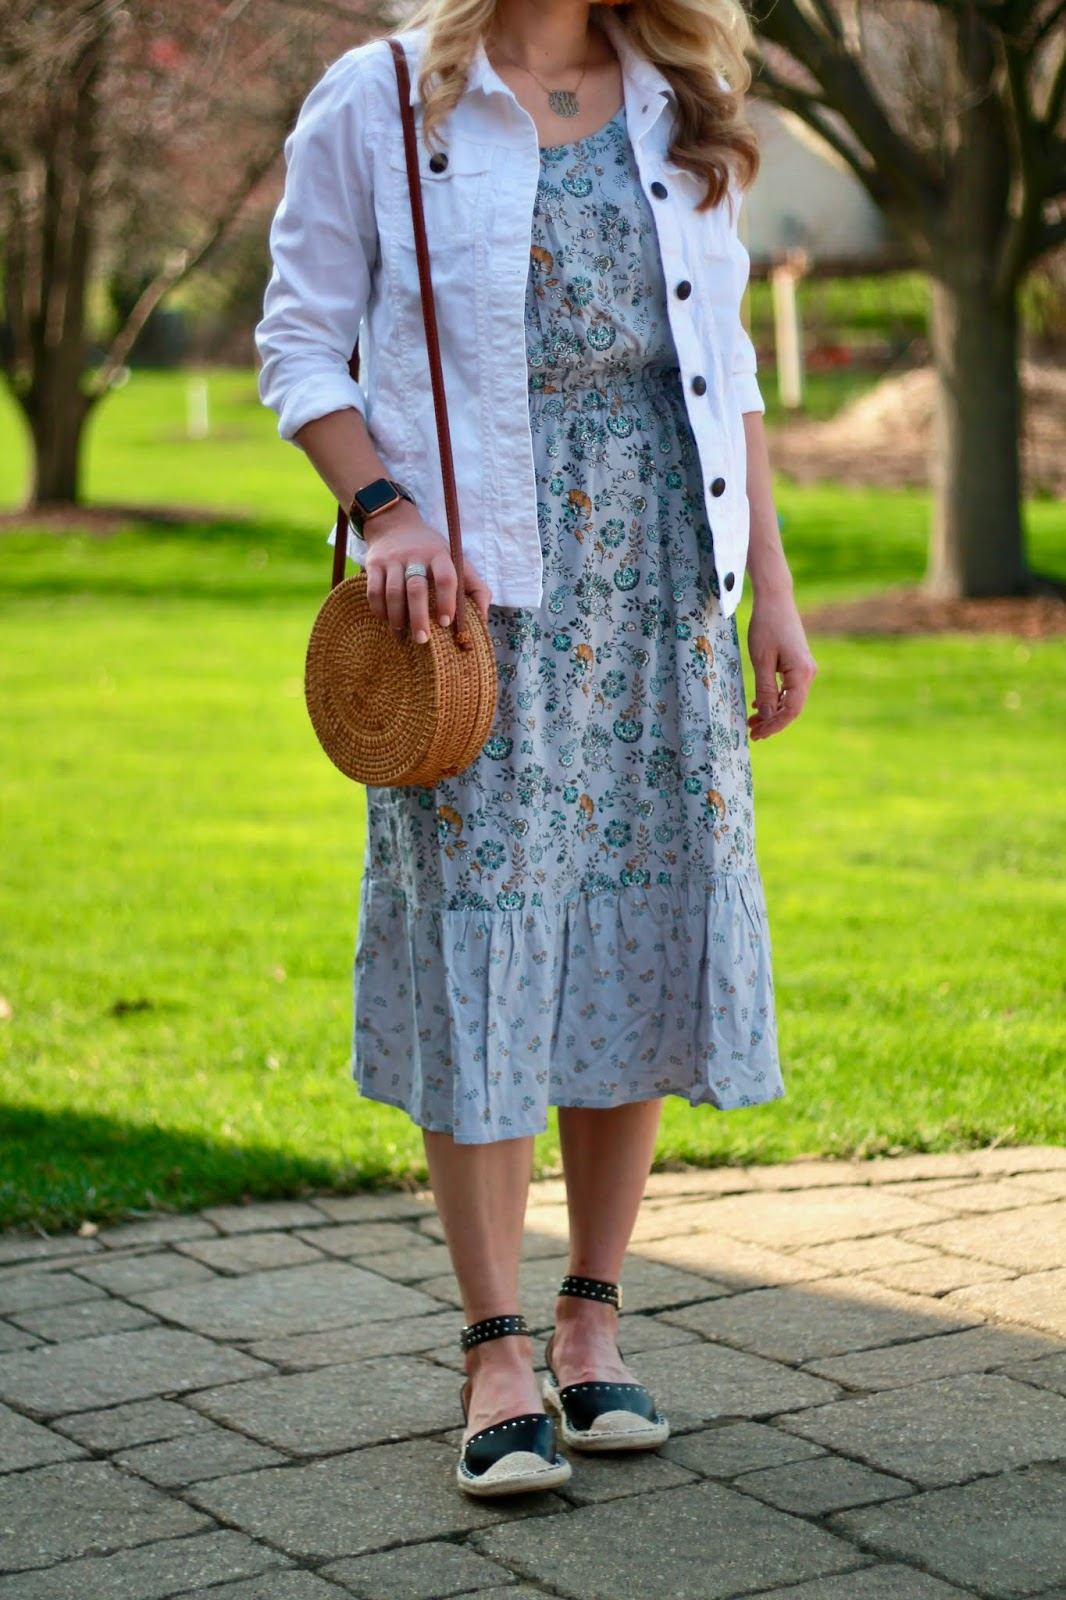 aventura westlyn dress, aventura spring 2020, white denim jacket, black studded espadrilles, straw circle bag